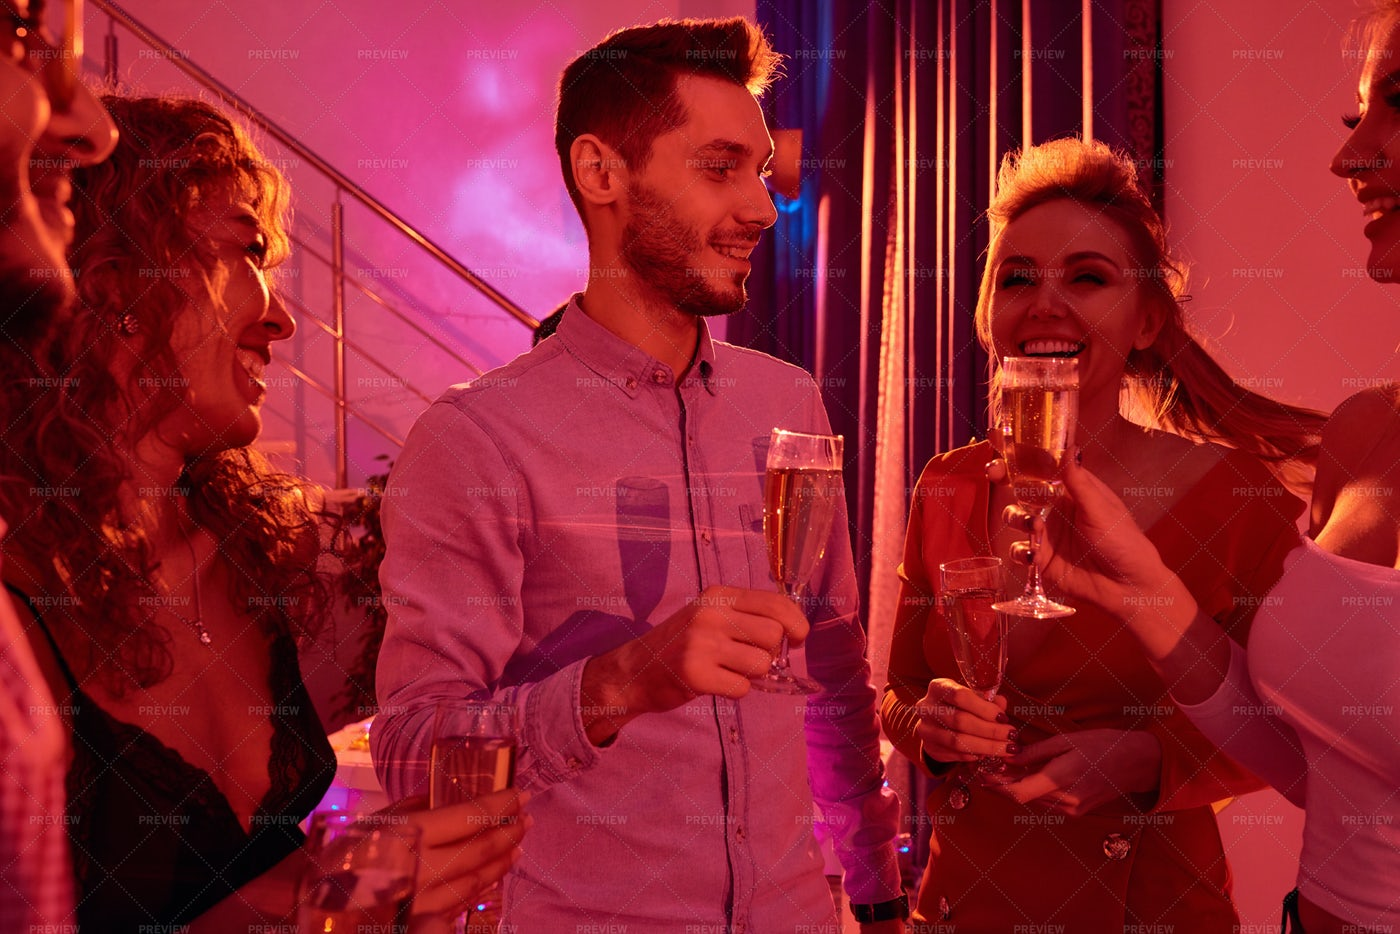 People Enjoying Private Party: Stock Photos